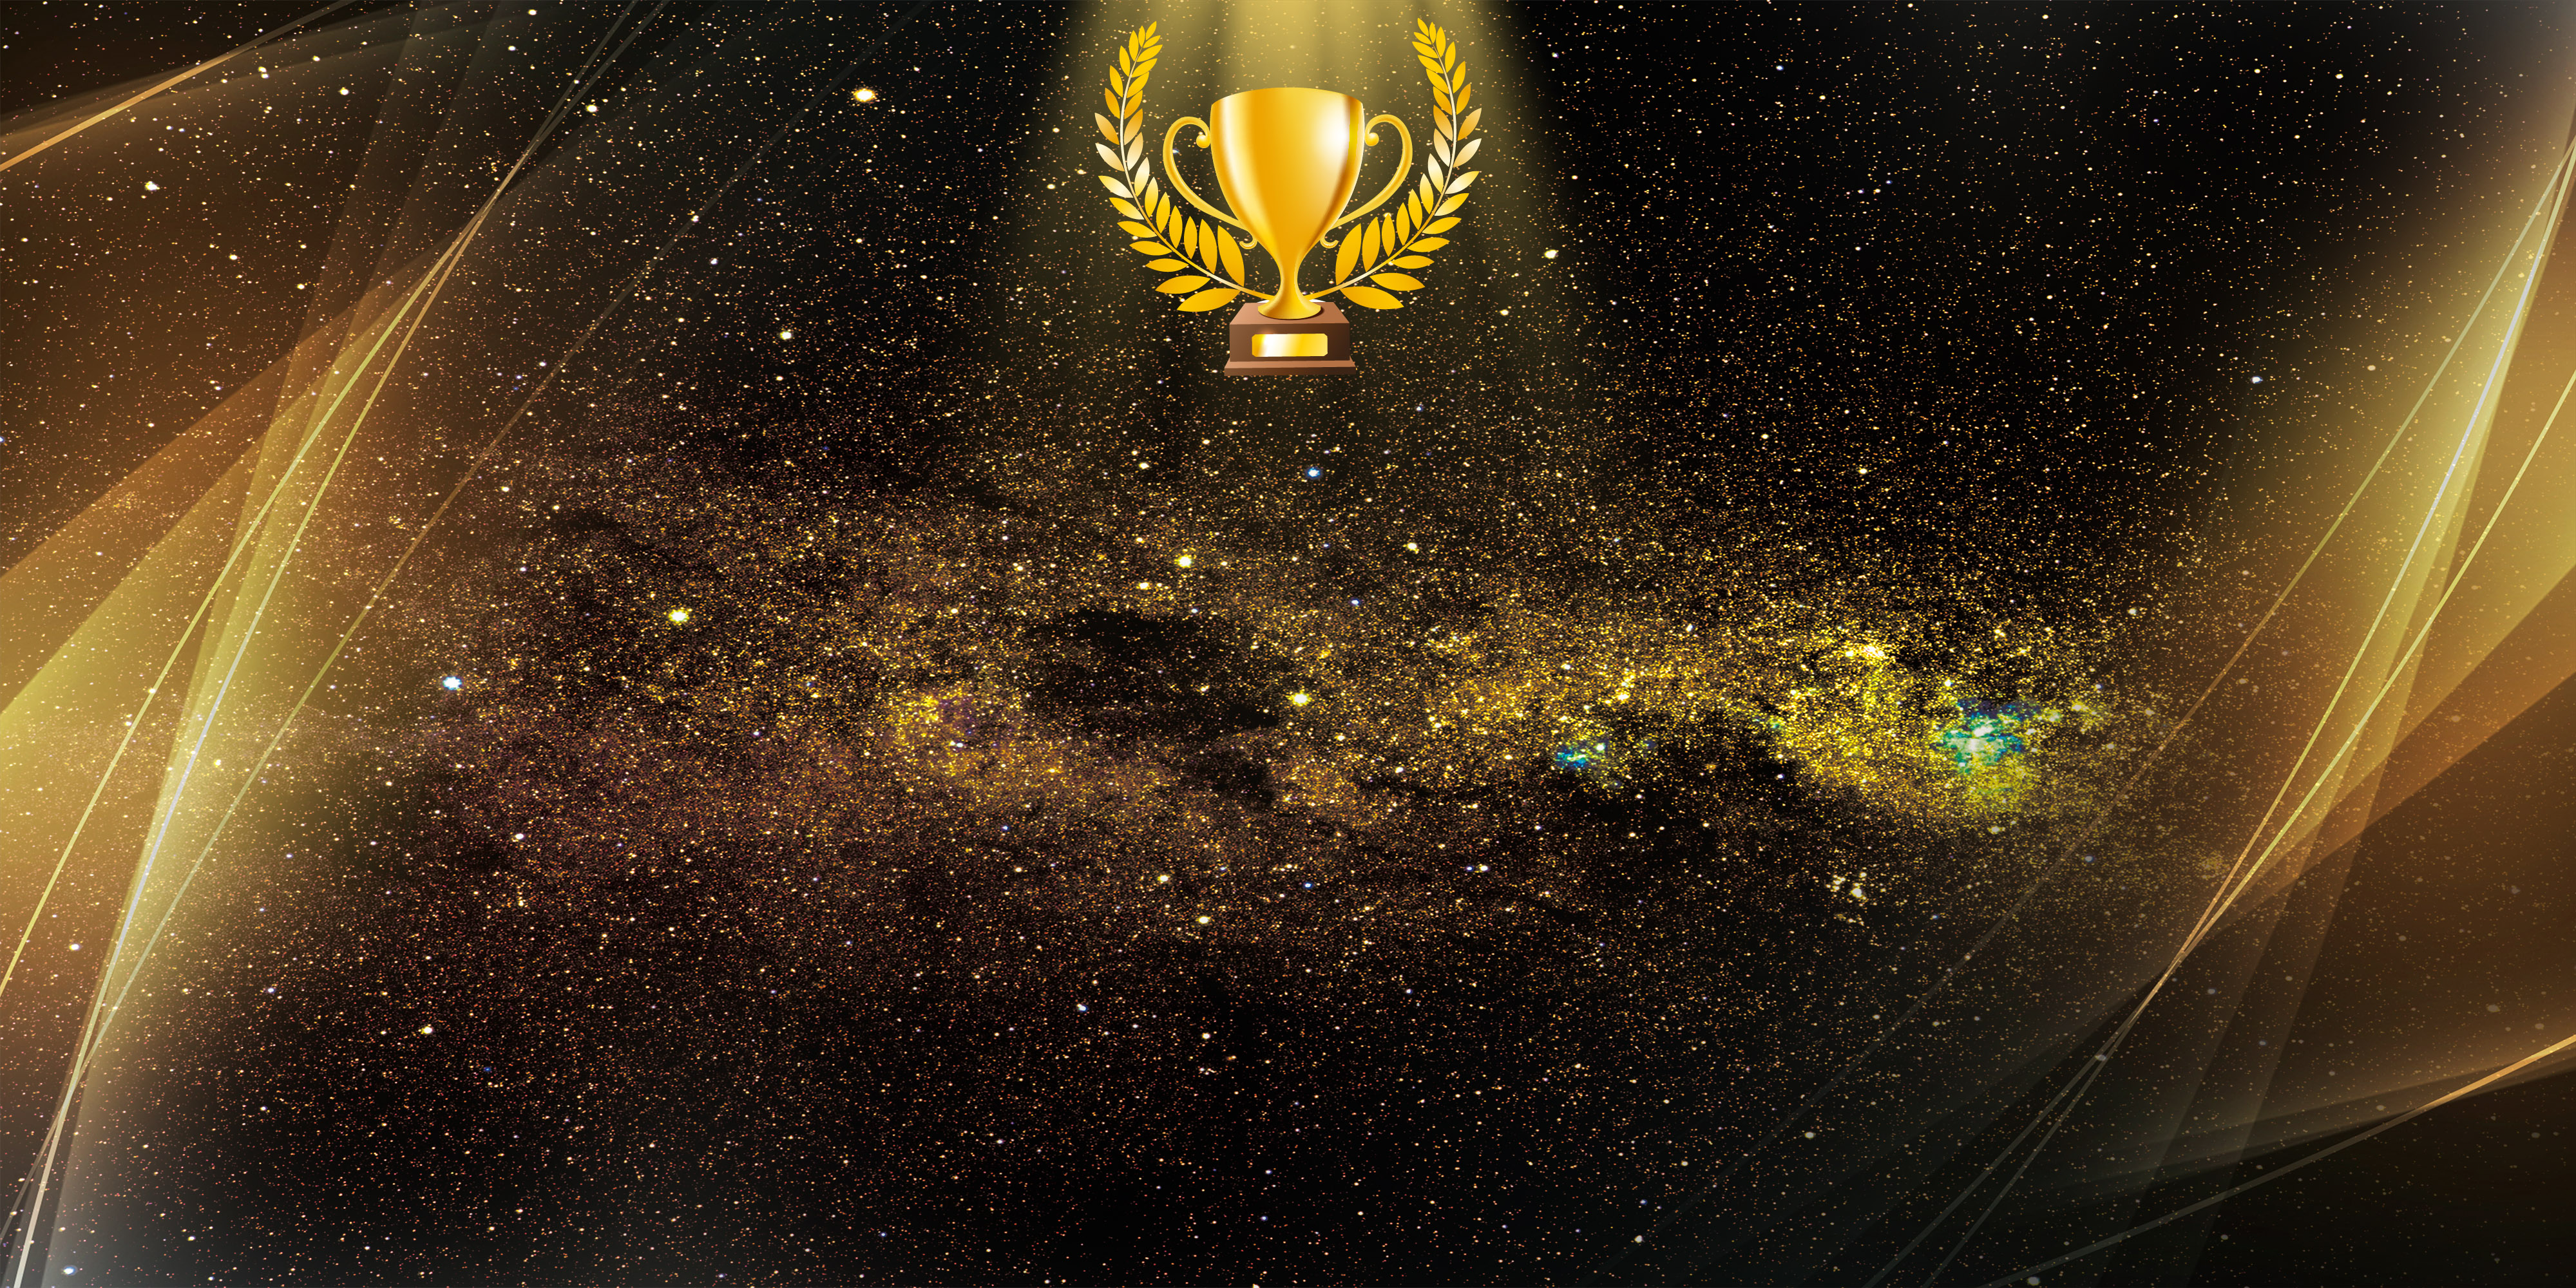 cool atmosphere award ceremony poster background material